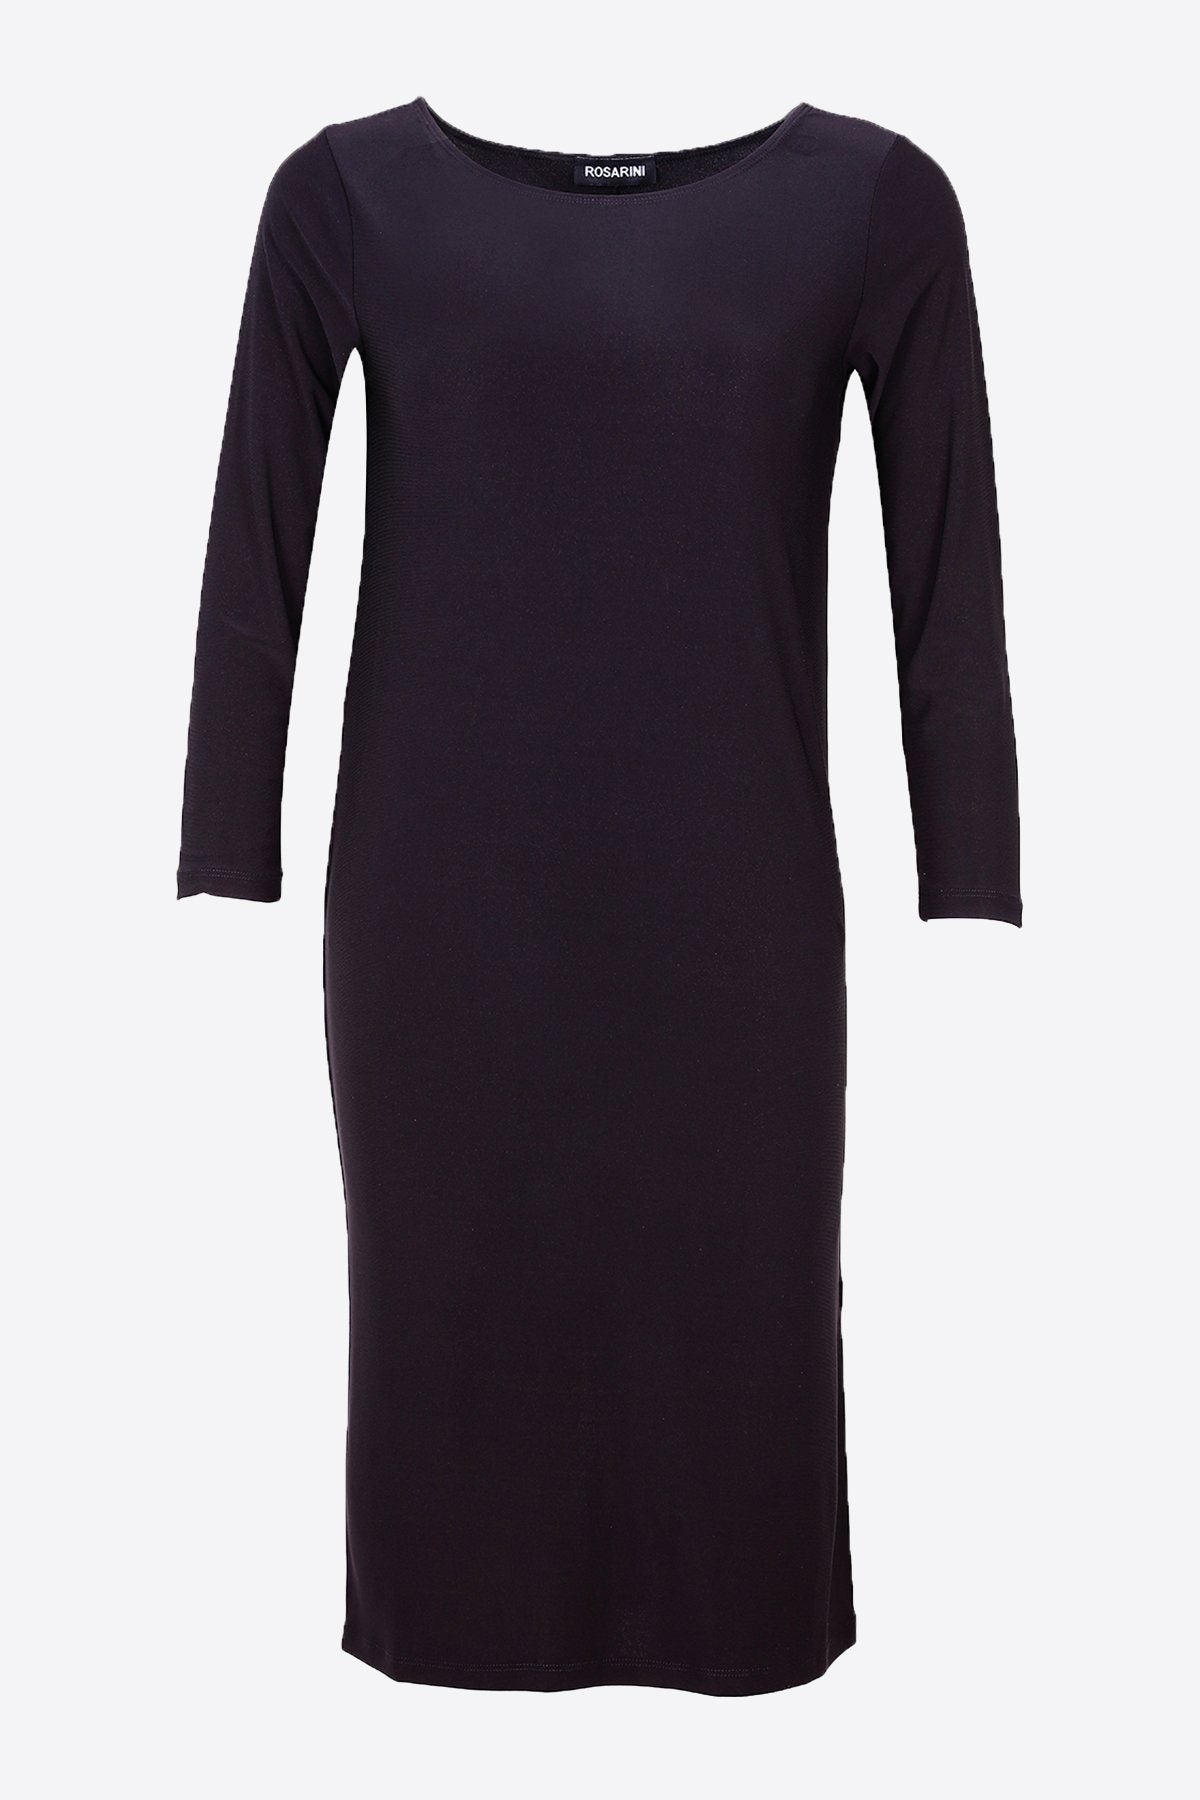 PLUS SIZE MRS PARK DRESS BLACK